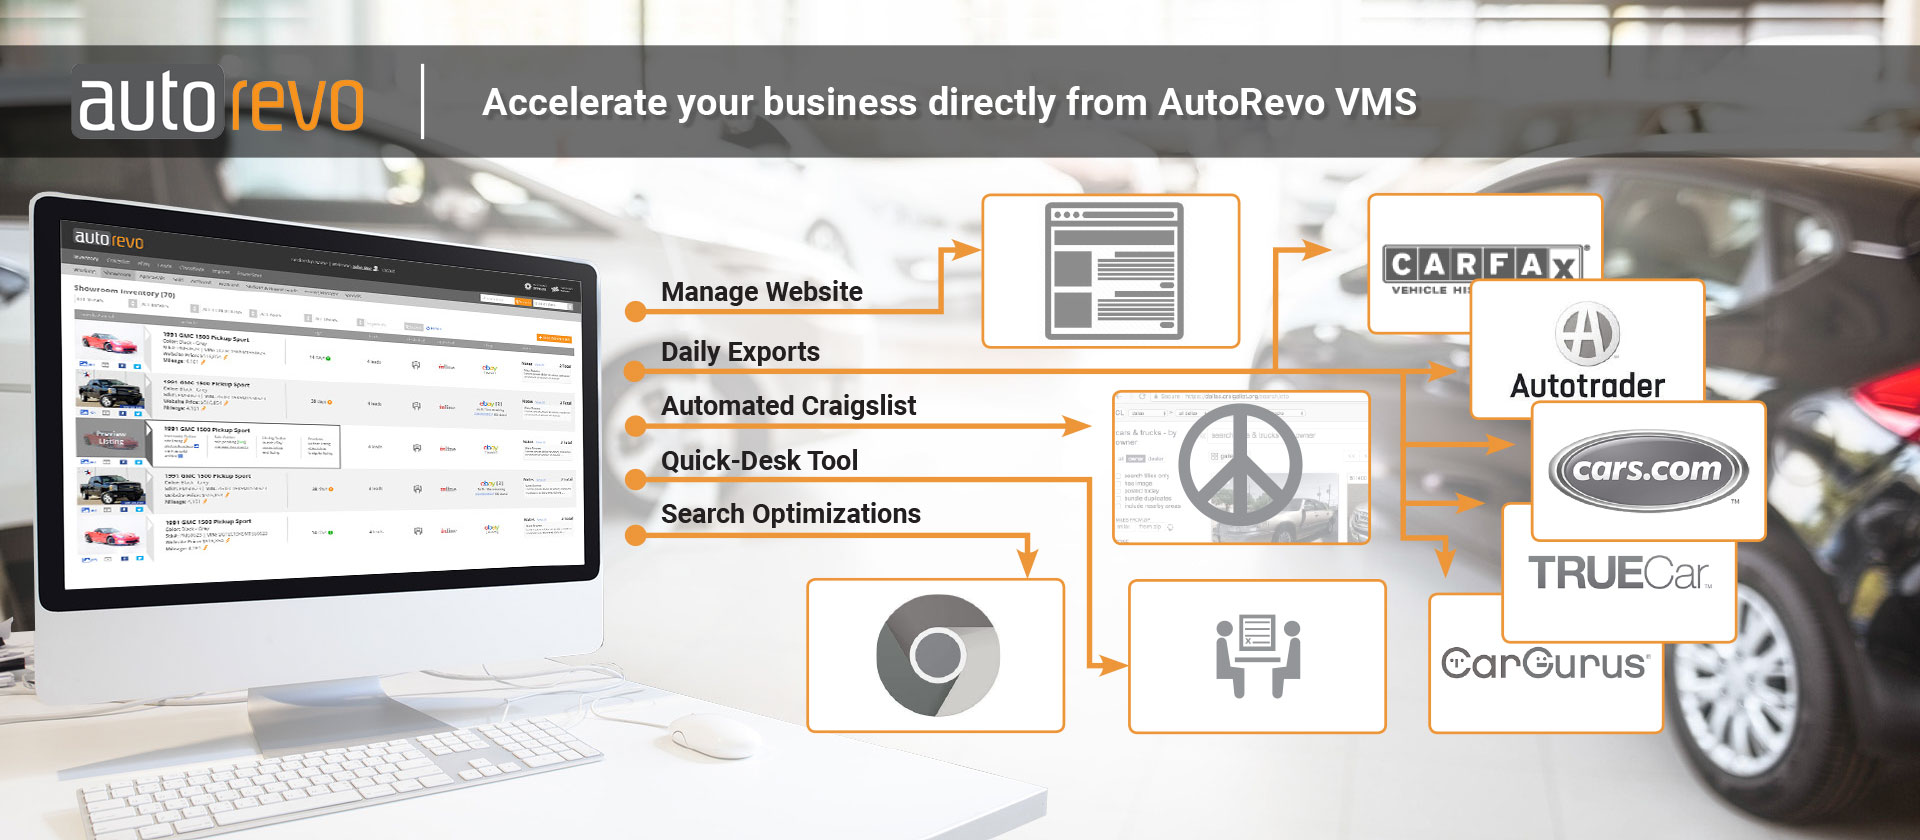 Accelerate your business with AutoRevo VMS